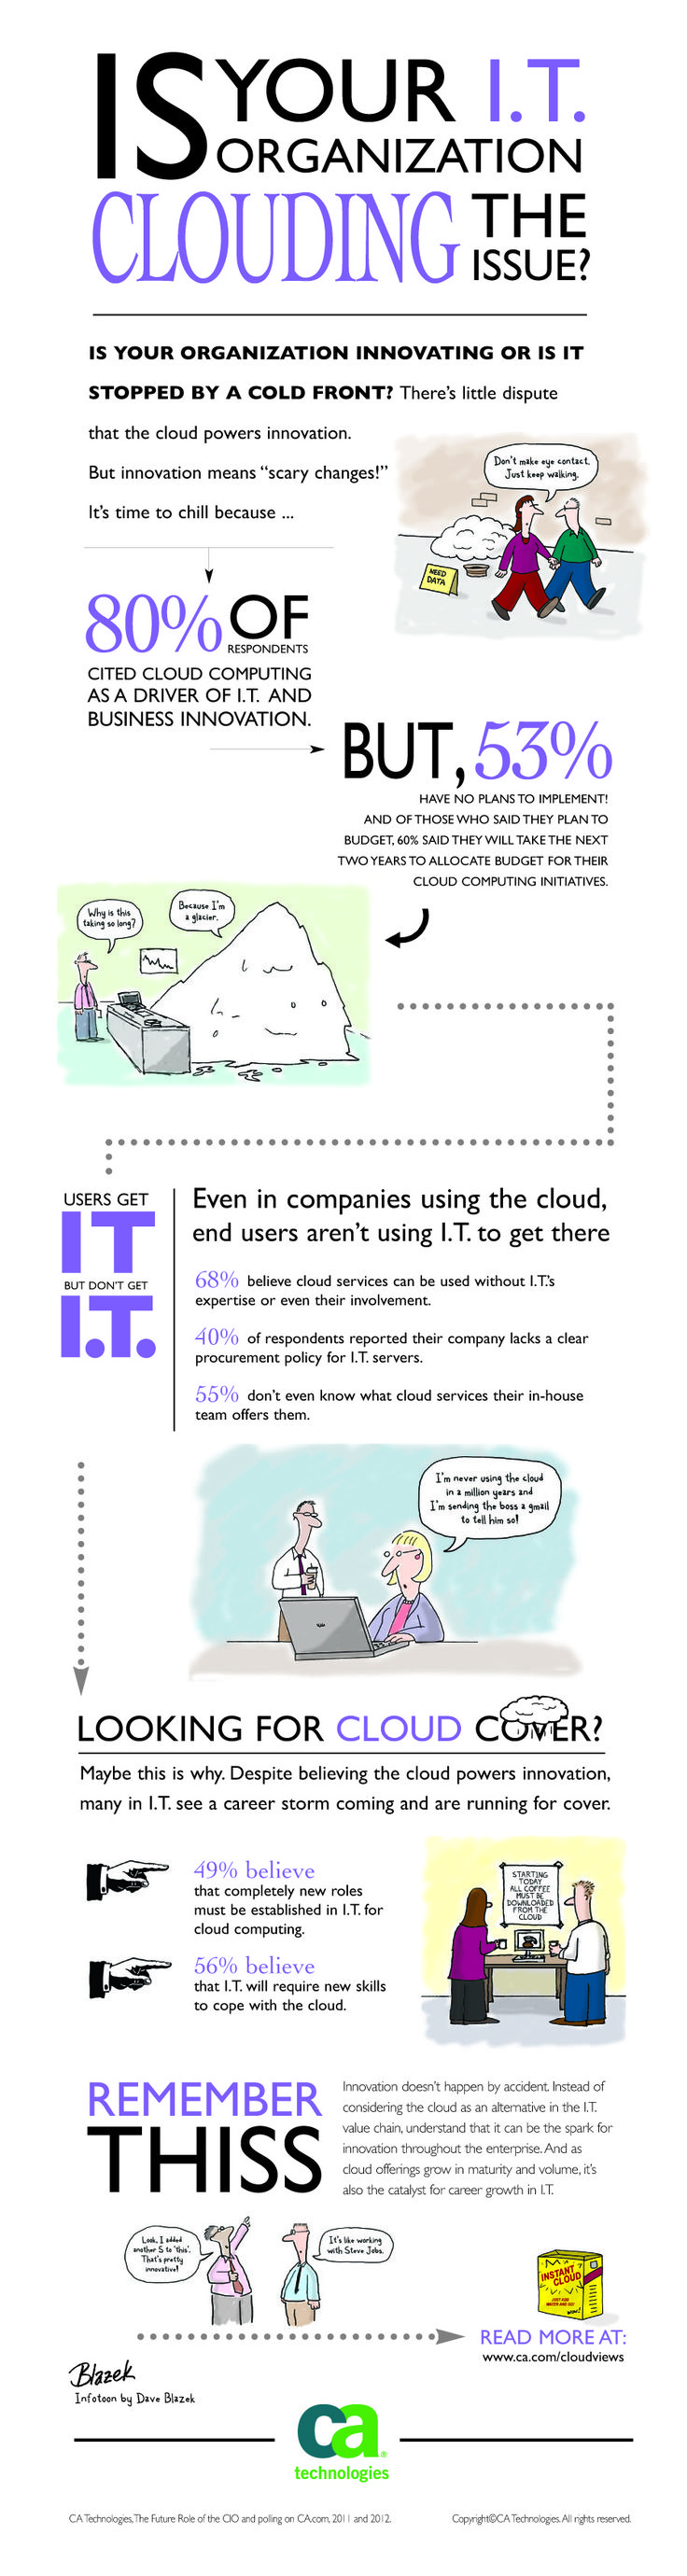 Is Your IT Organization Clouding the Issue?  Infographic #DFW